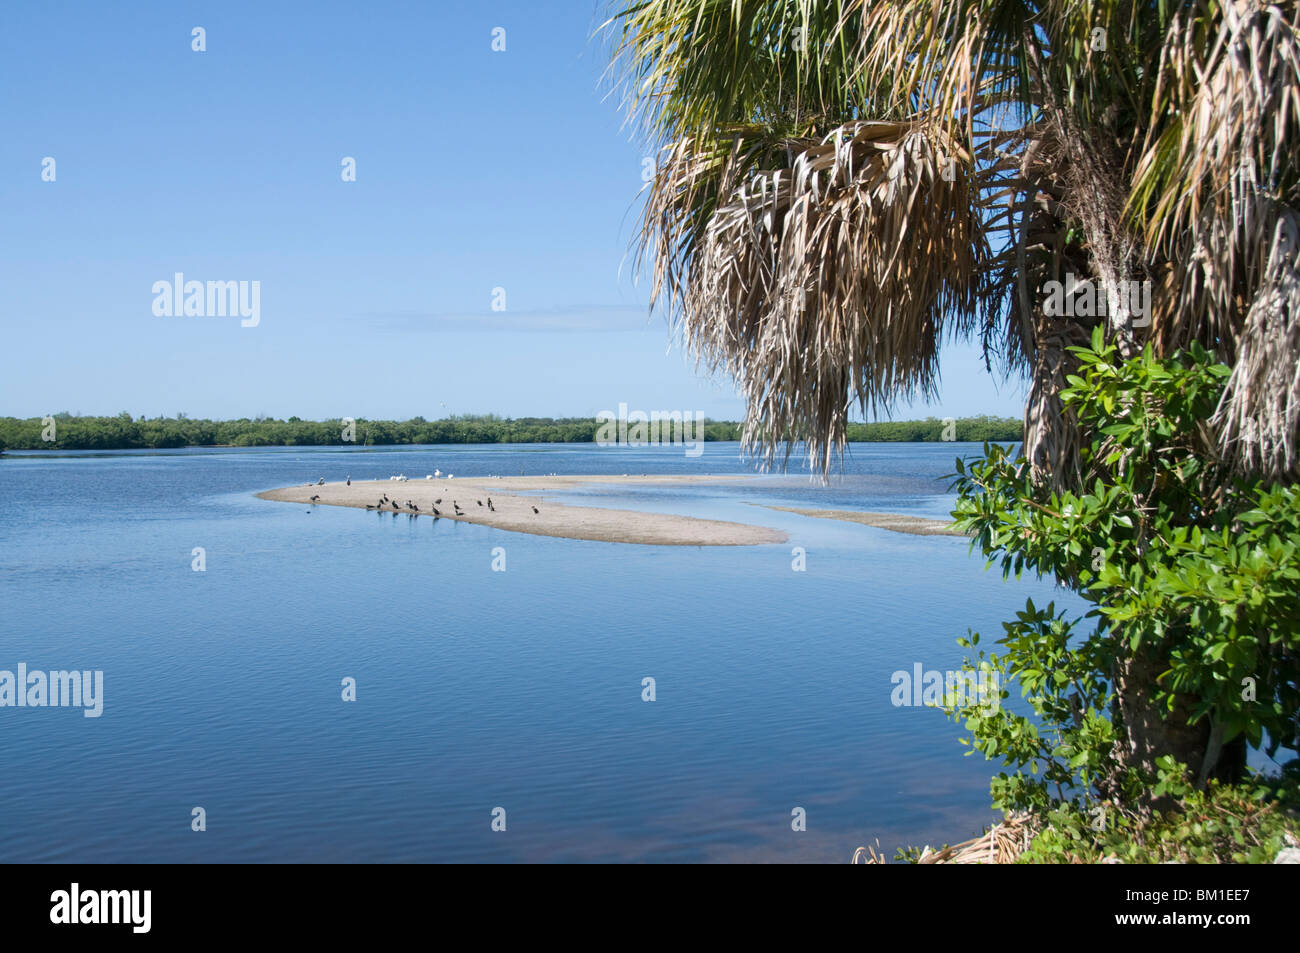 J.N. 'Ding' Darling Wildlife Reserve, Sanibel Island, la Côte du Golfe, Floride, États-Unis d'Amérique, Photo Stock